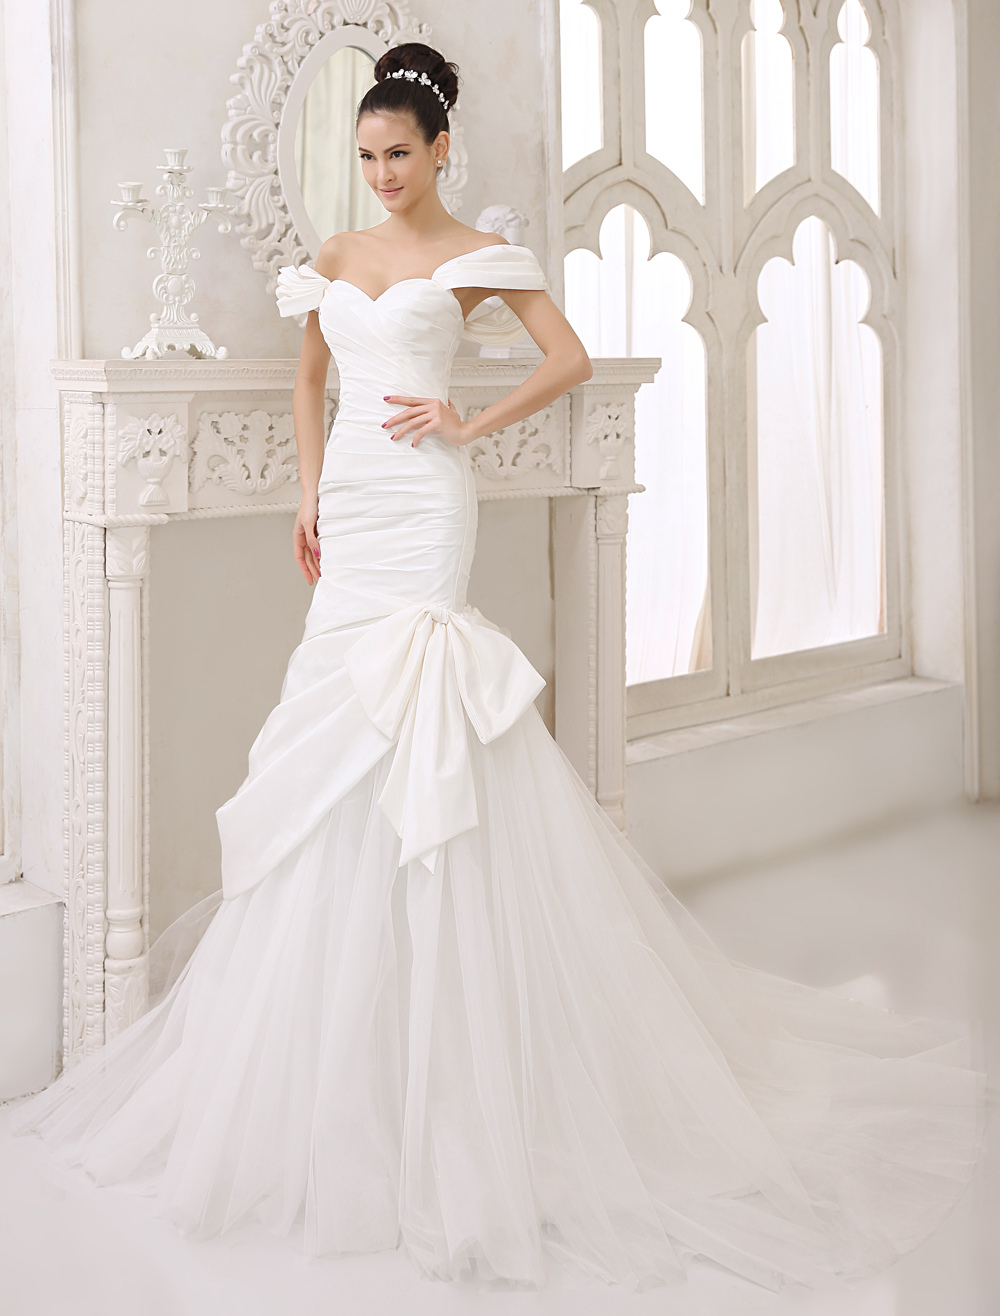 Chapel Train Ivory Bow Bridal Mermaid Wedding Dress with Sweetheart Neck Off-The-Shoulder Milanoo